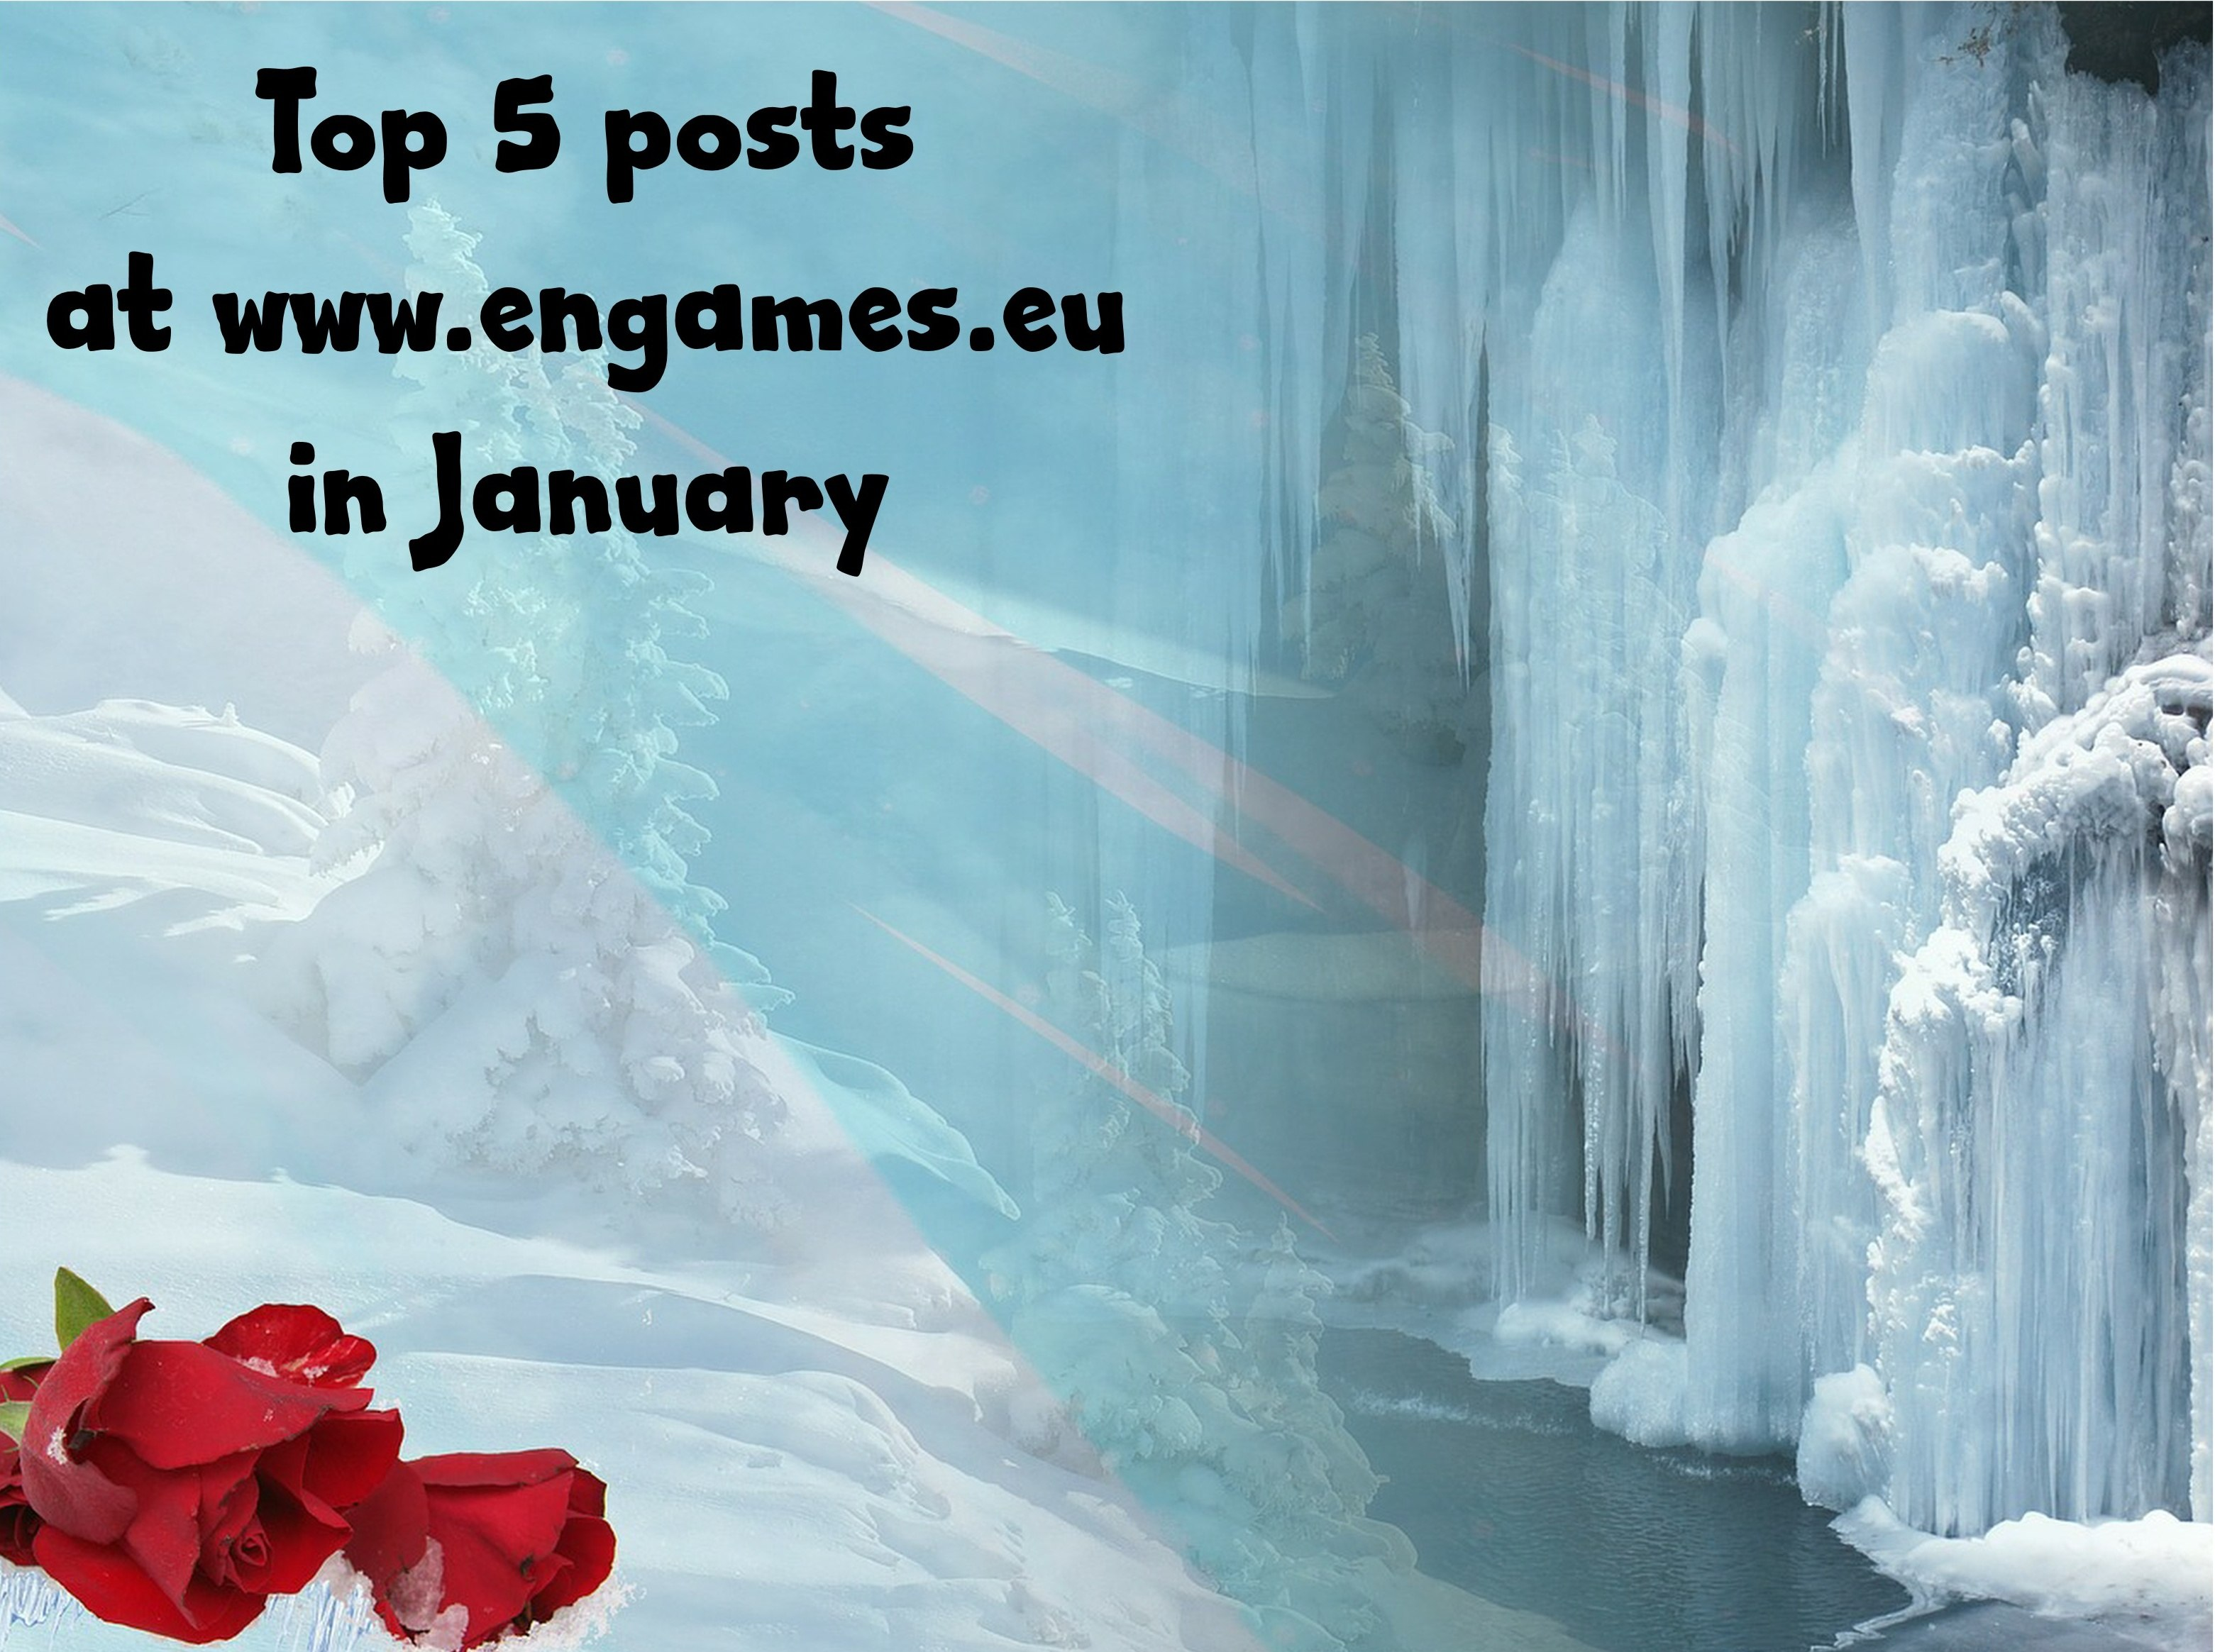 top 5 posts at engames